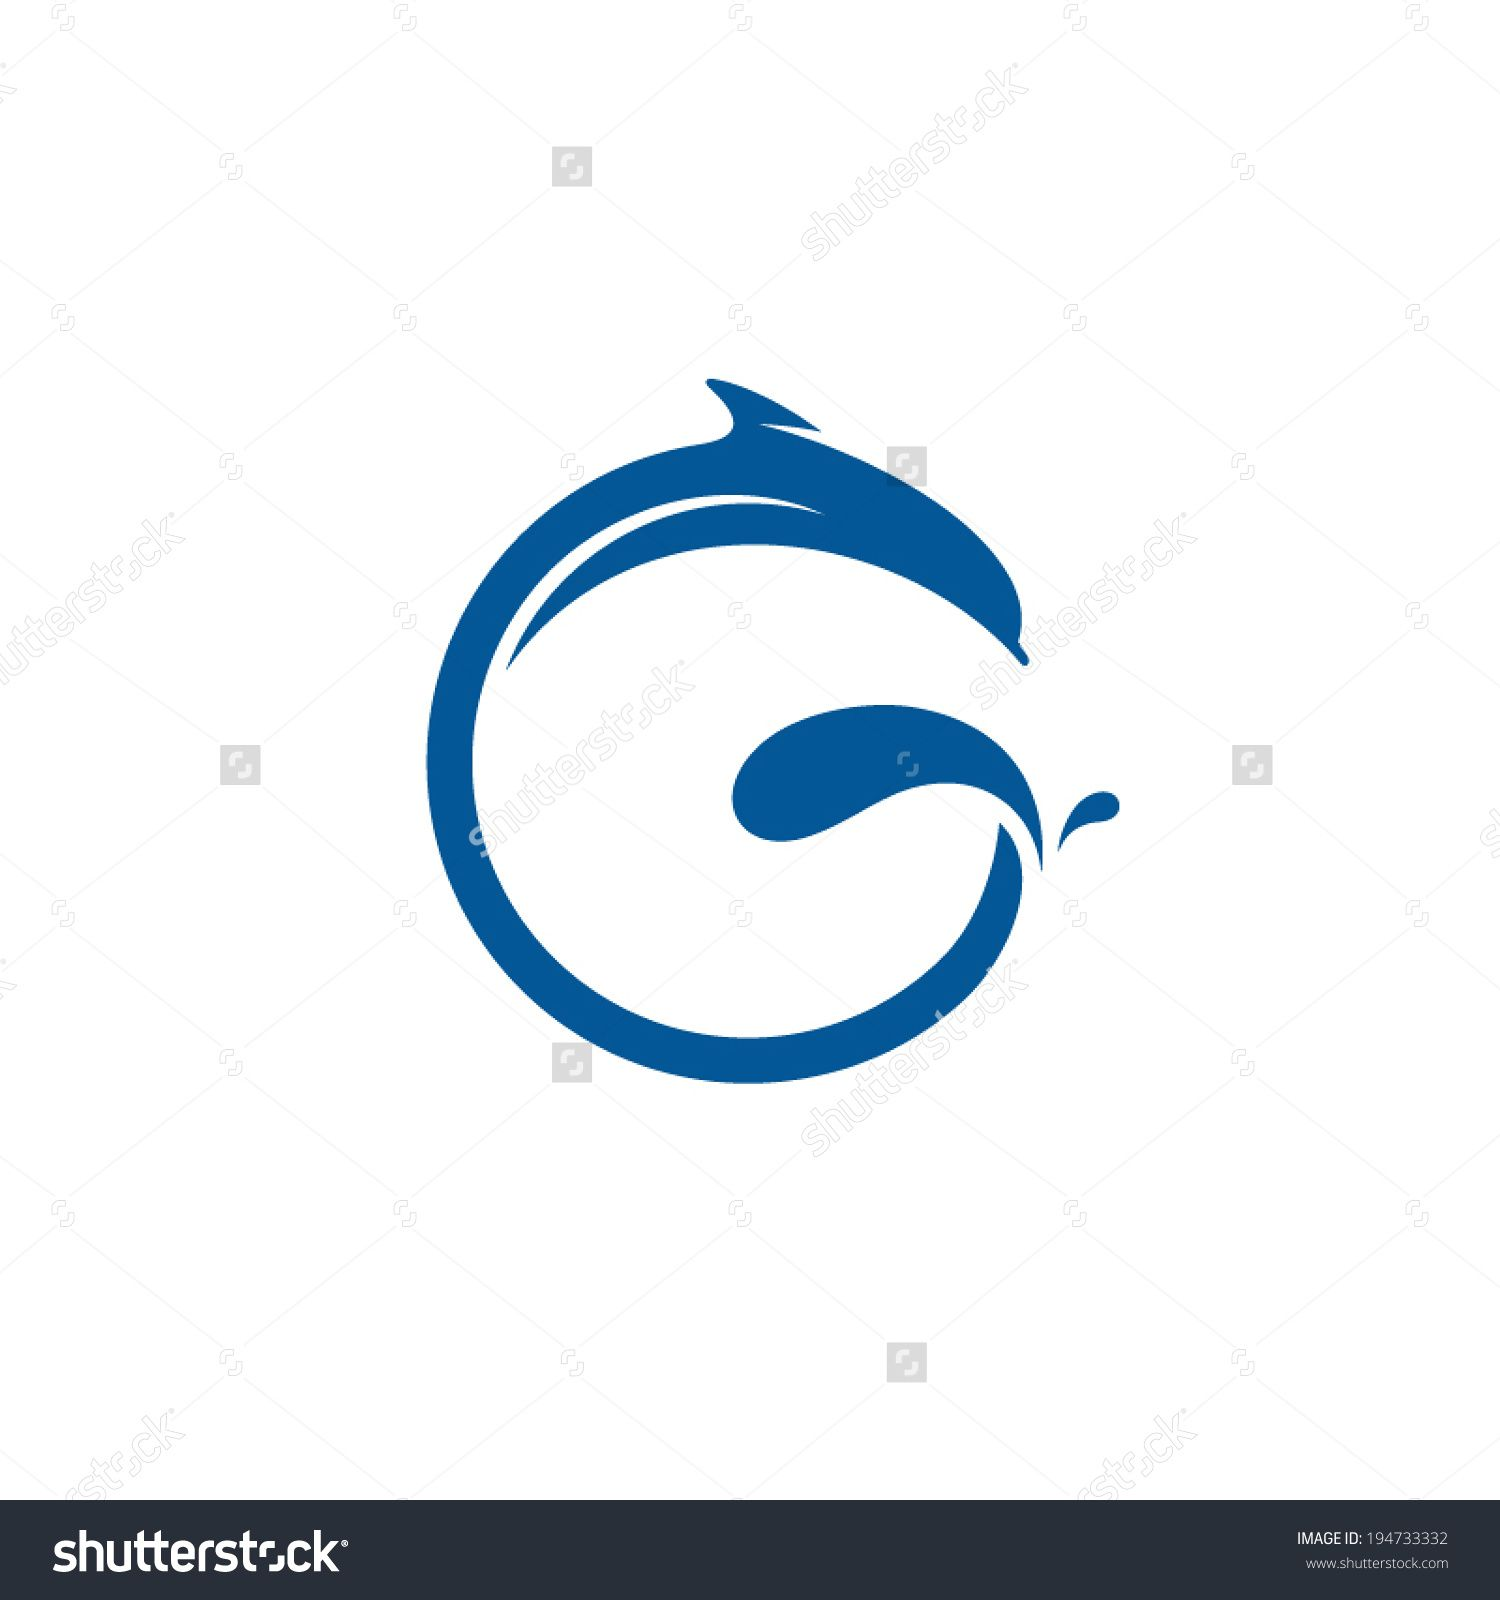 Stock vector sign the letter g dolphin on the wave water animal icon stock vector sign the letter g dolphin on altavistaventures Images